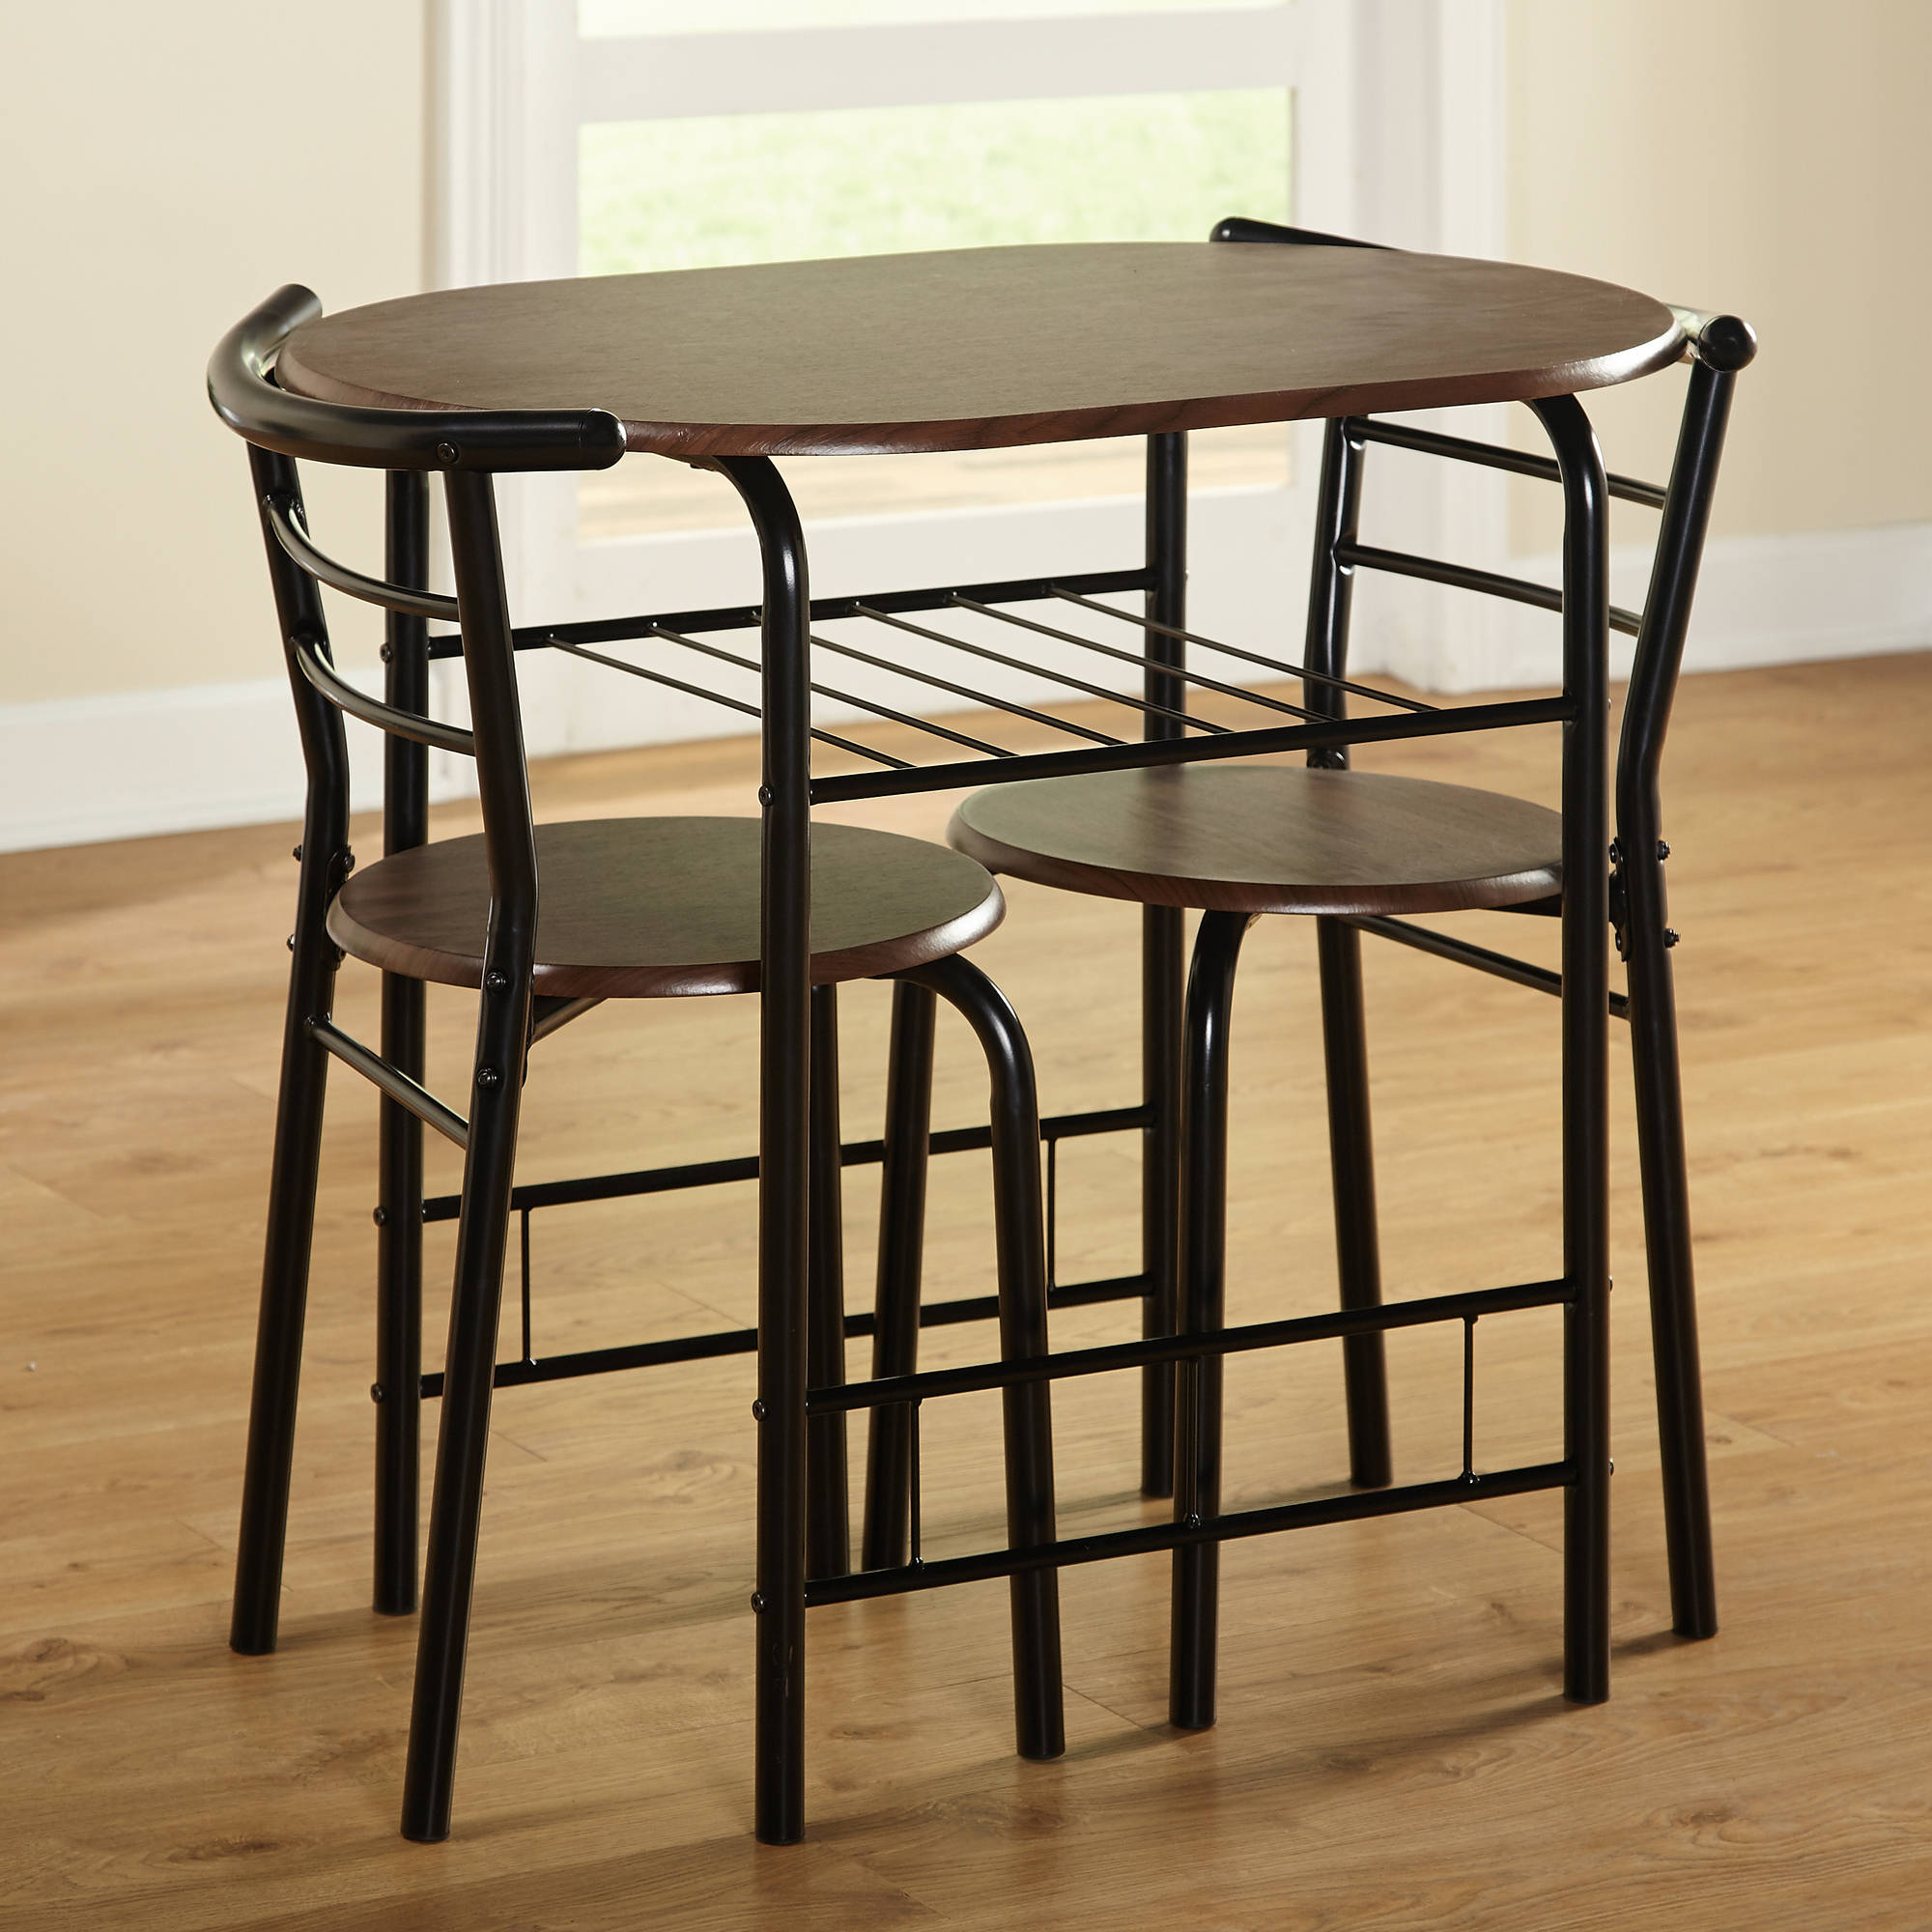 3 Piece Kitchen Table Set & In Best And Newest Tappahannock 3 Piece Counter Height Dining Sets (Image 3 of 20)